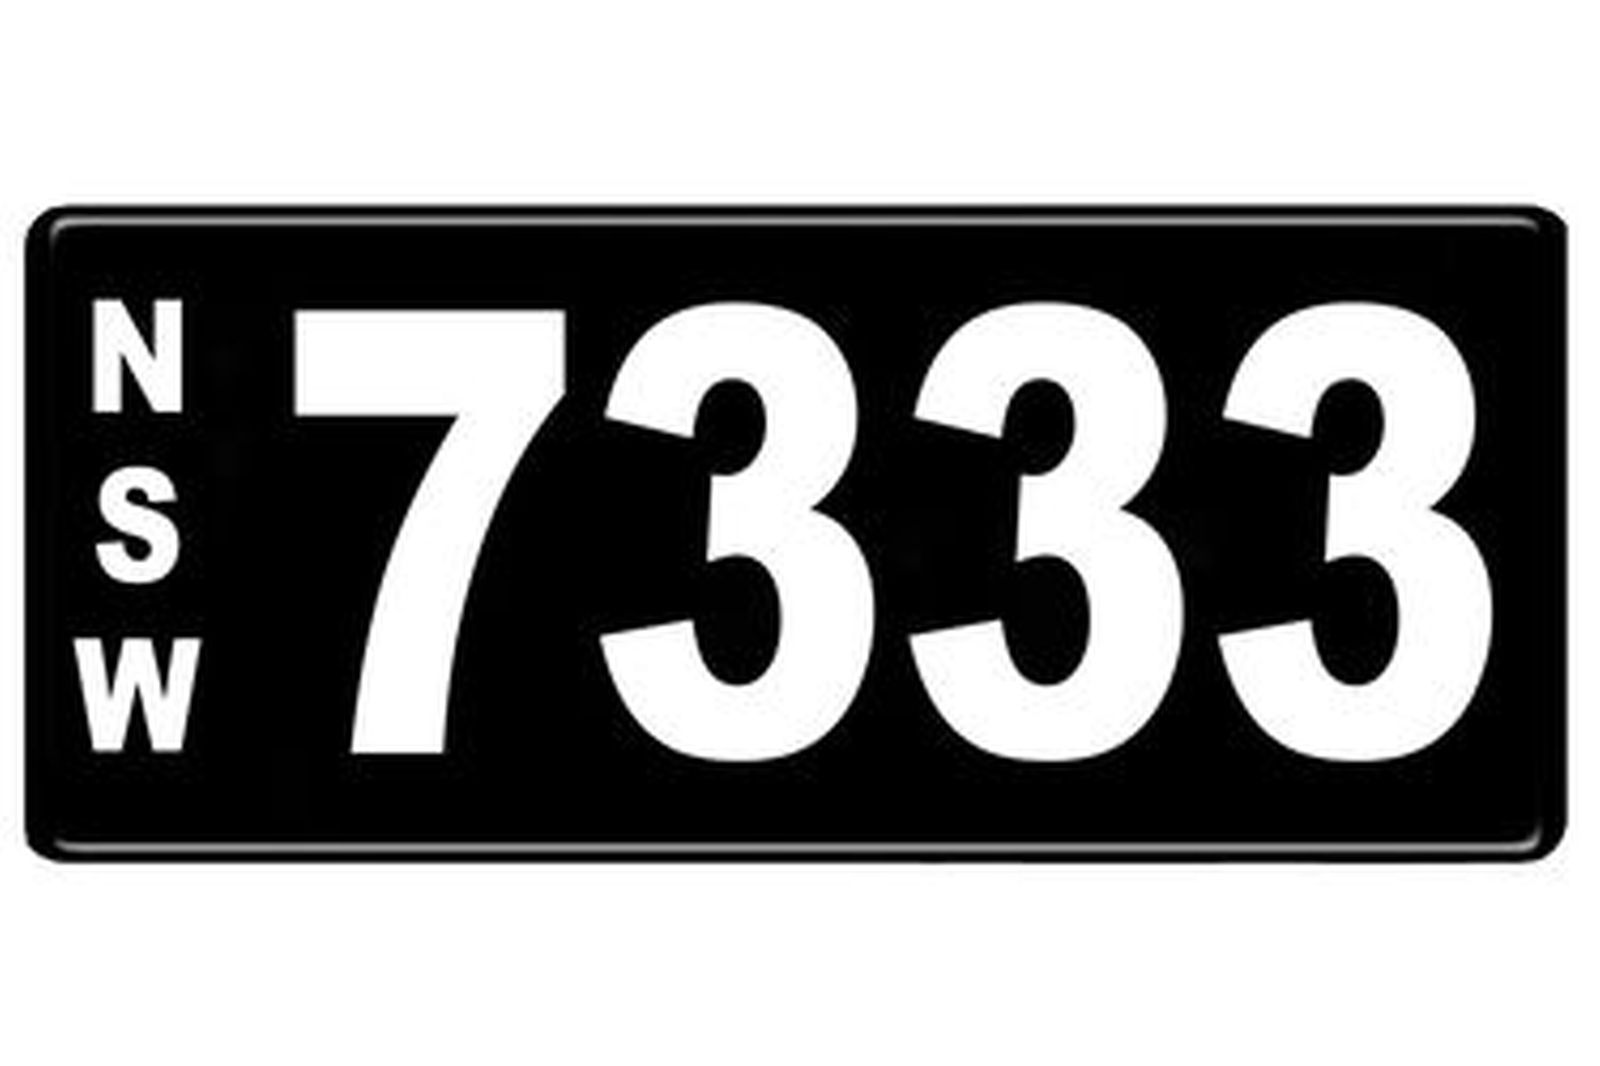 NSW Numerical Number Plates '7333'